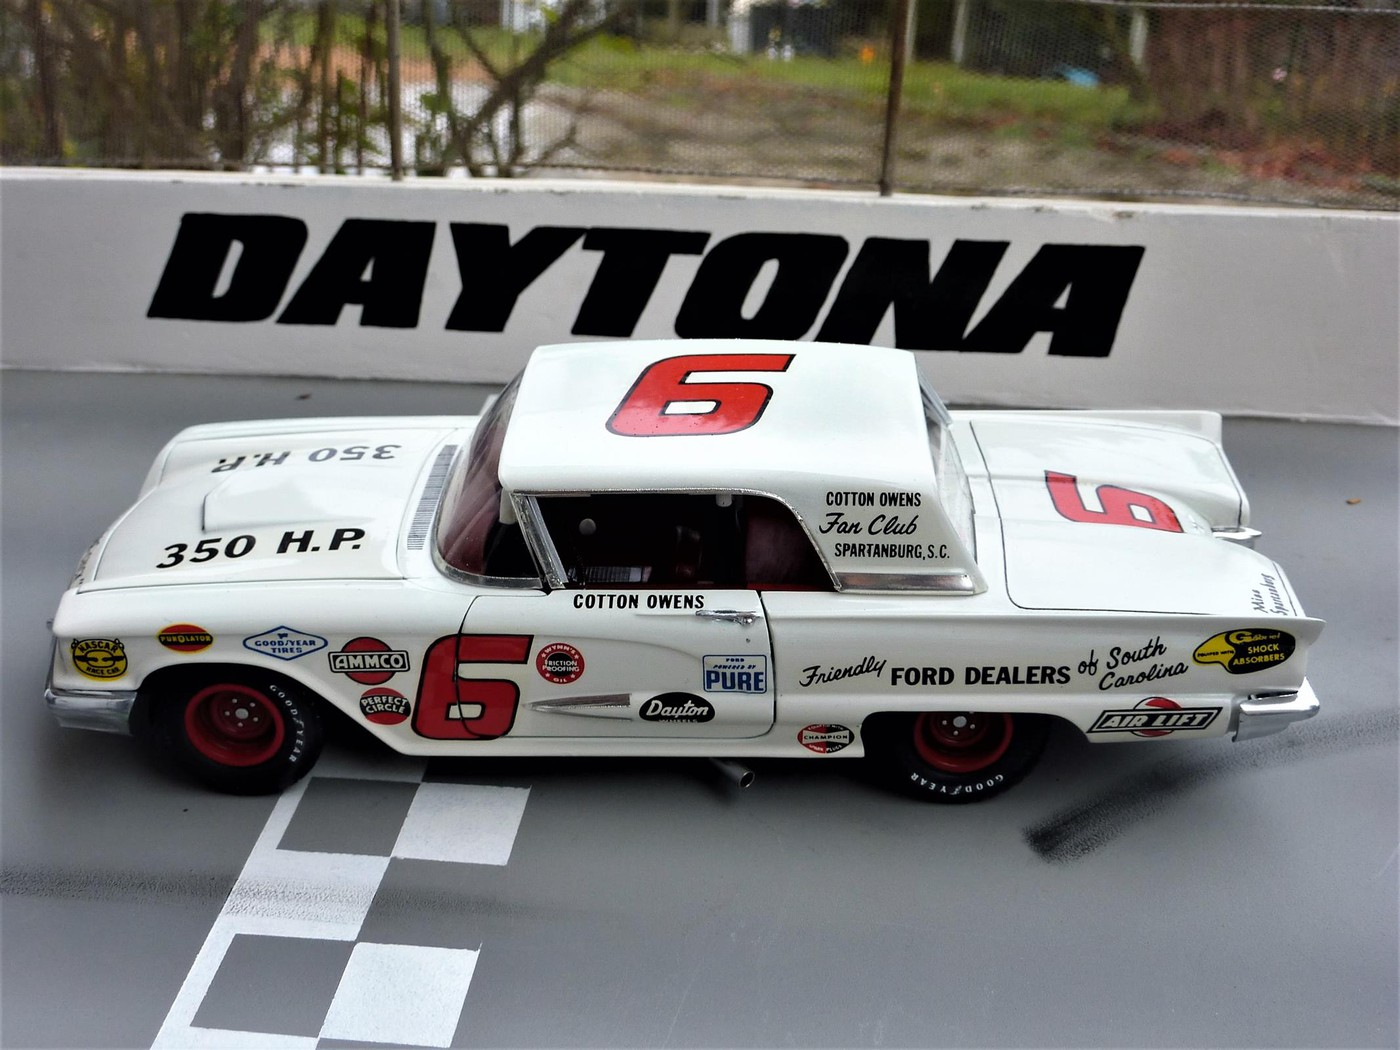 Ford Thunderbird 59 Nascar Cotton Owens terminée - Page 2 Photo7-vi